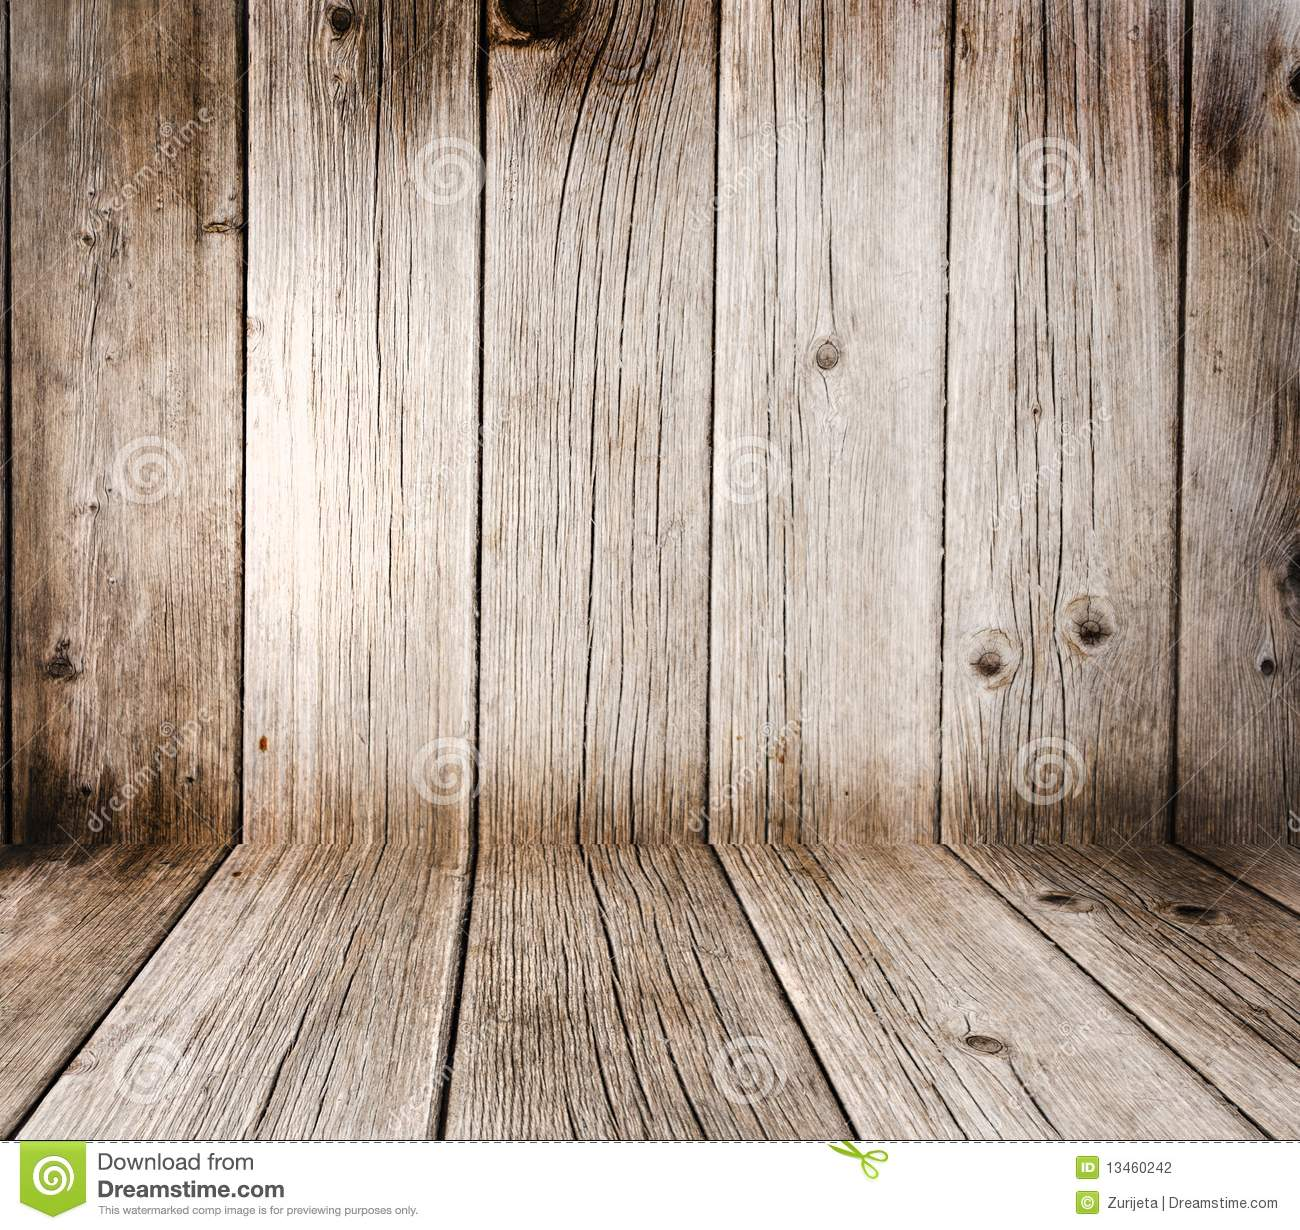 Creative Wallpapers: Creative Wooden Background Stock Photo. Image Of Interior